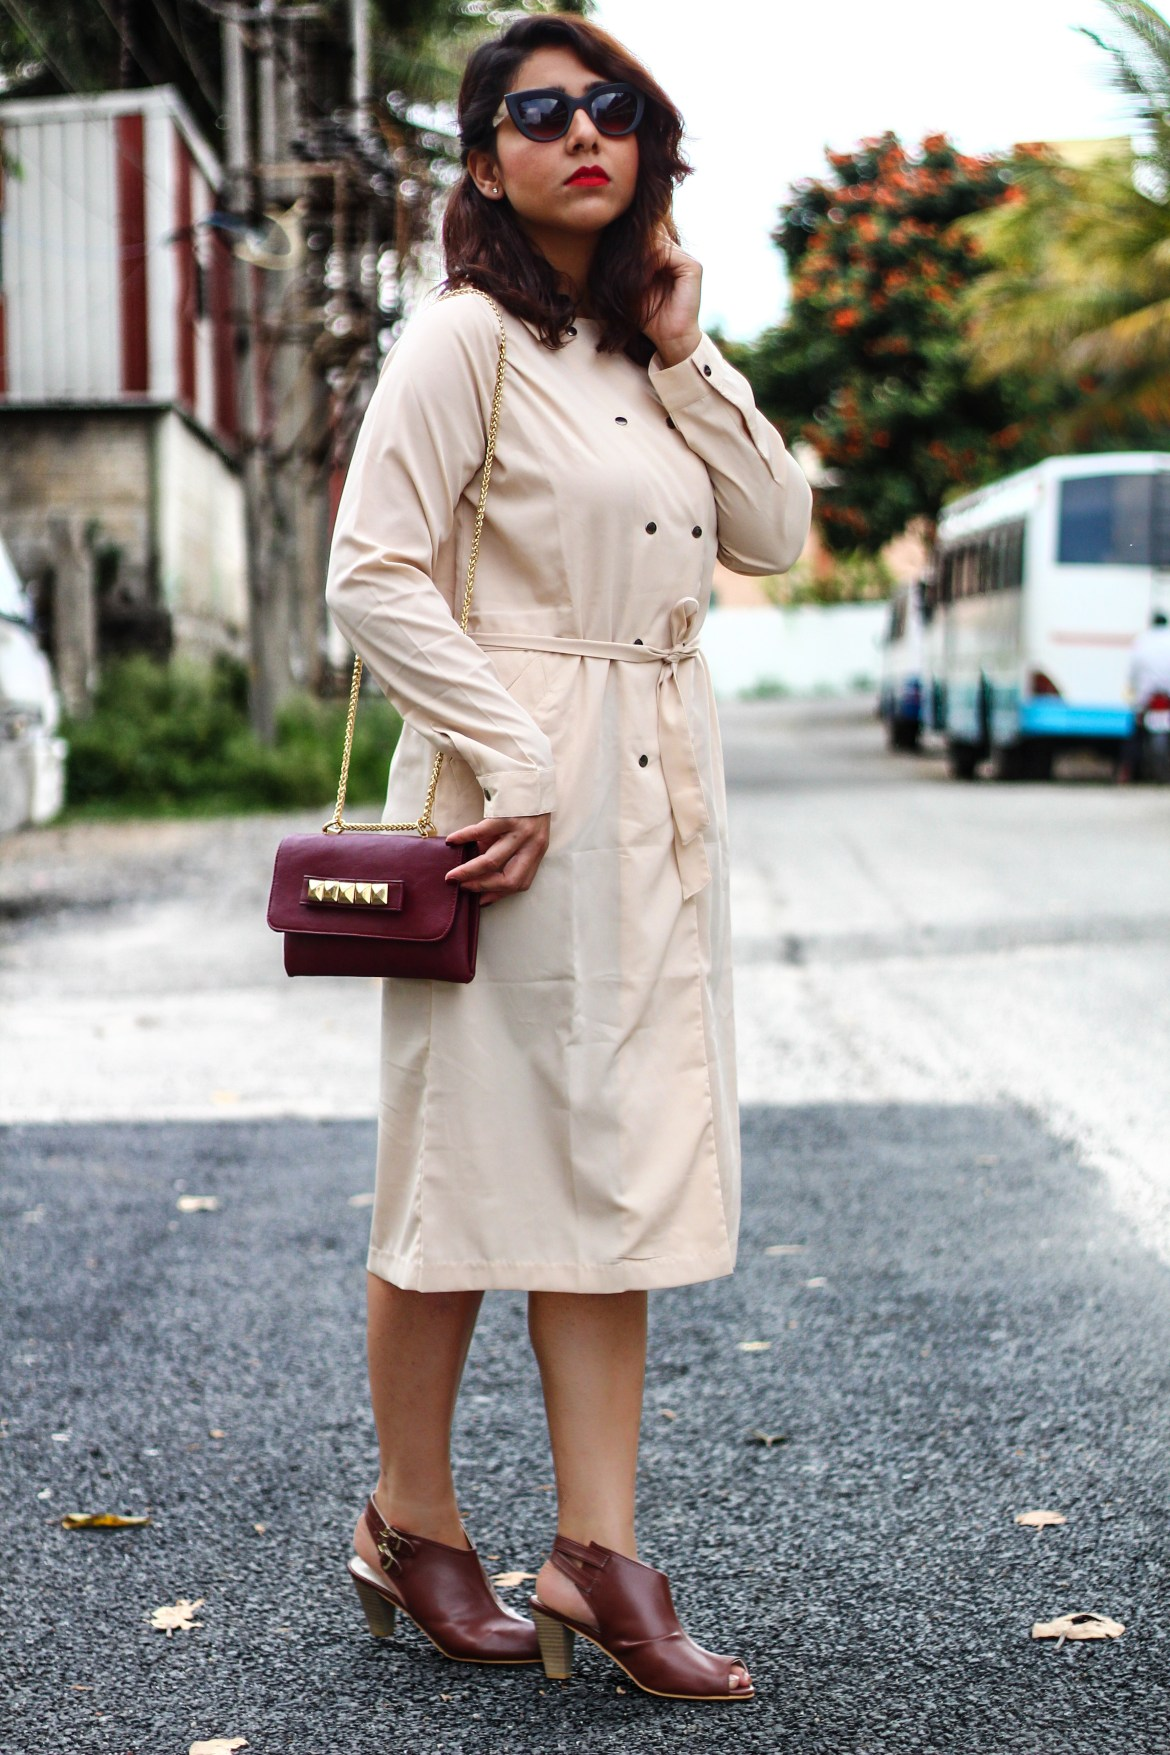 Fall Fashion - Trench coat